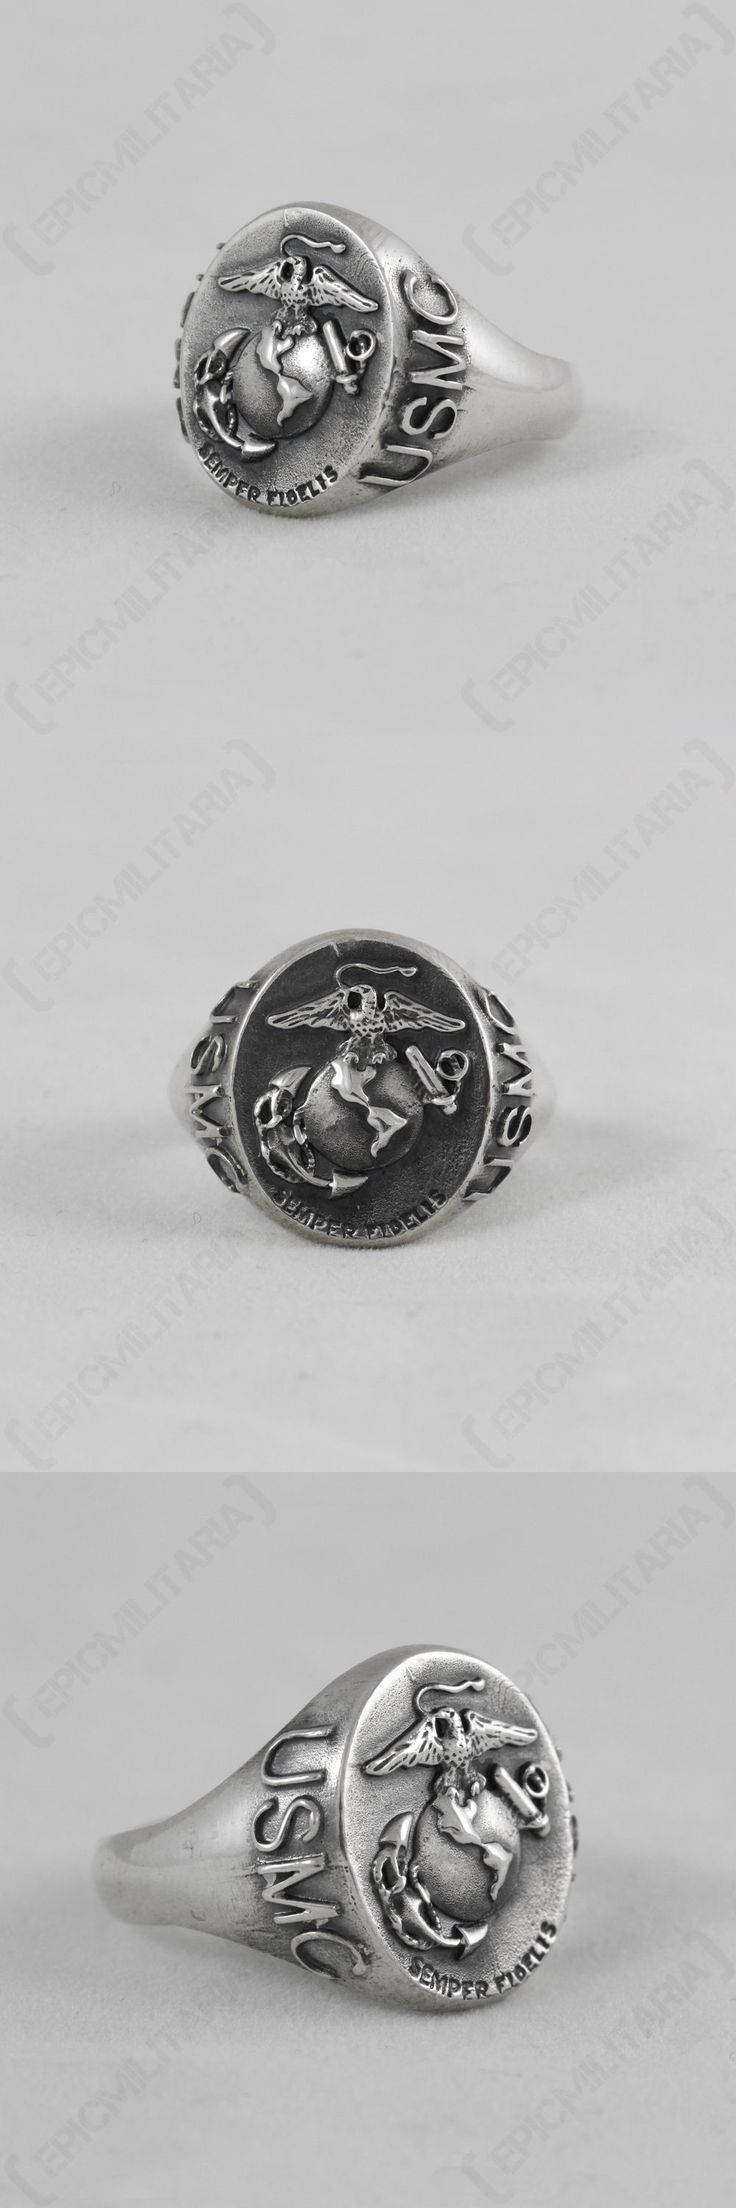 Waist Packs and Bags 181380: Ww2 Us Marine Corps Ring - Repro American Silver Jewellery Semper Fidelis -> BUY IT NOW ONLY: $66.9 on eBay!